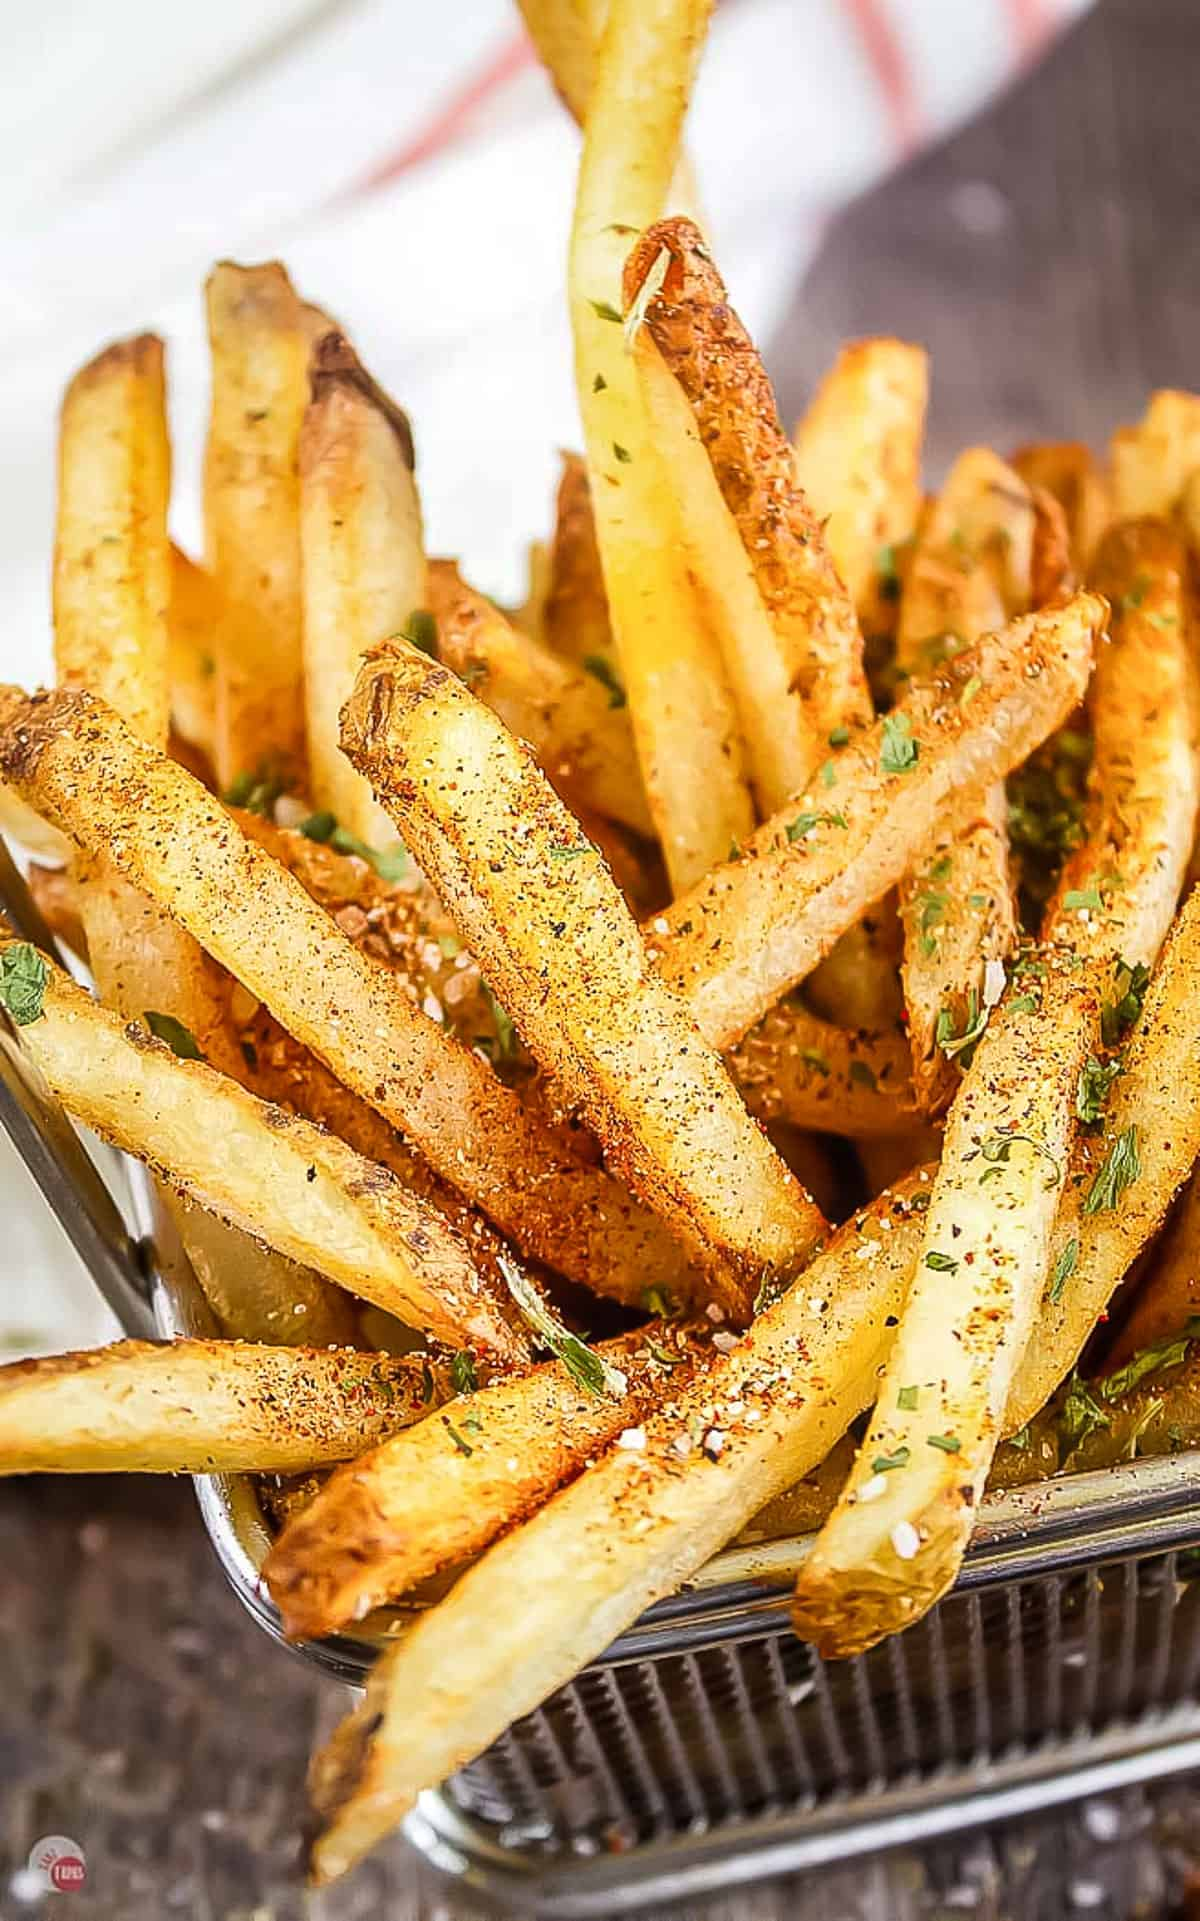 wire basket of fries with seasoning on them